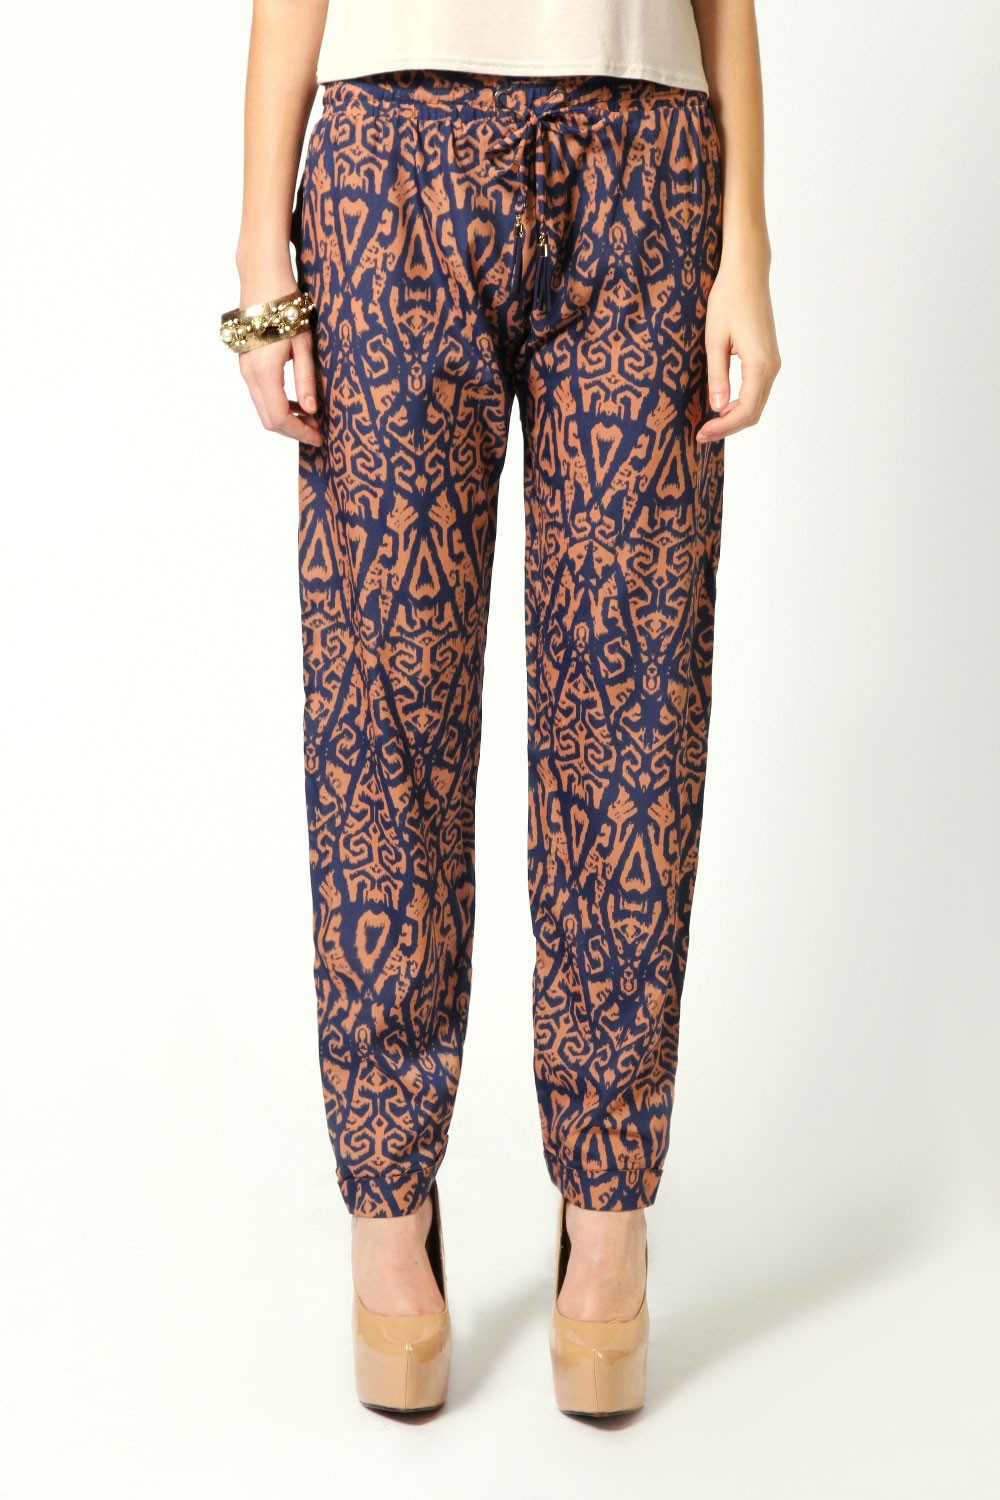 boohoo.com Emily Relaxed Fit Ikat Print Drawcord Trousers $50 nz fashion blogger